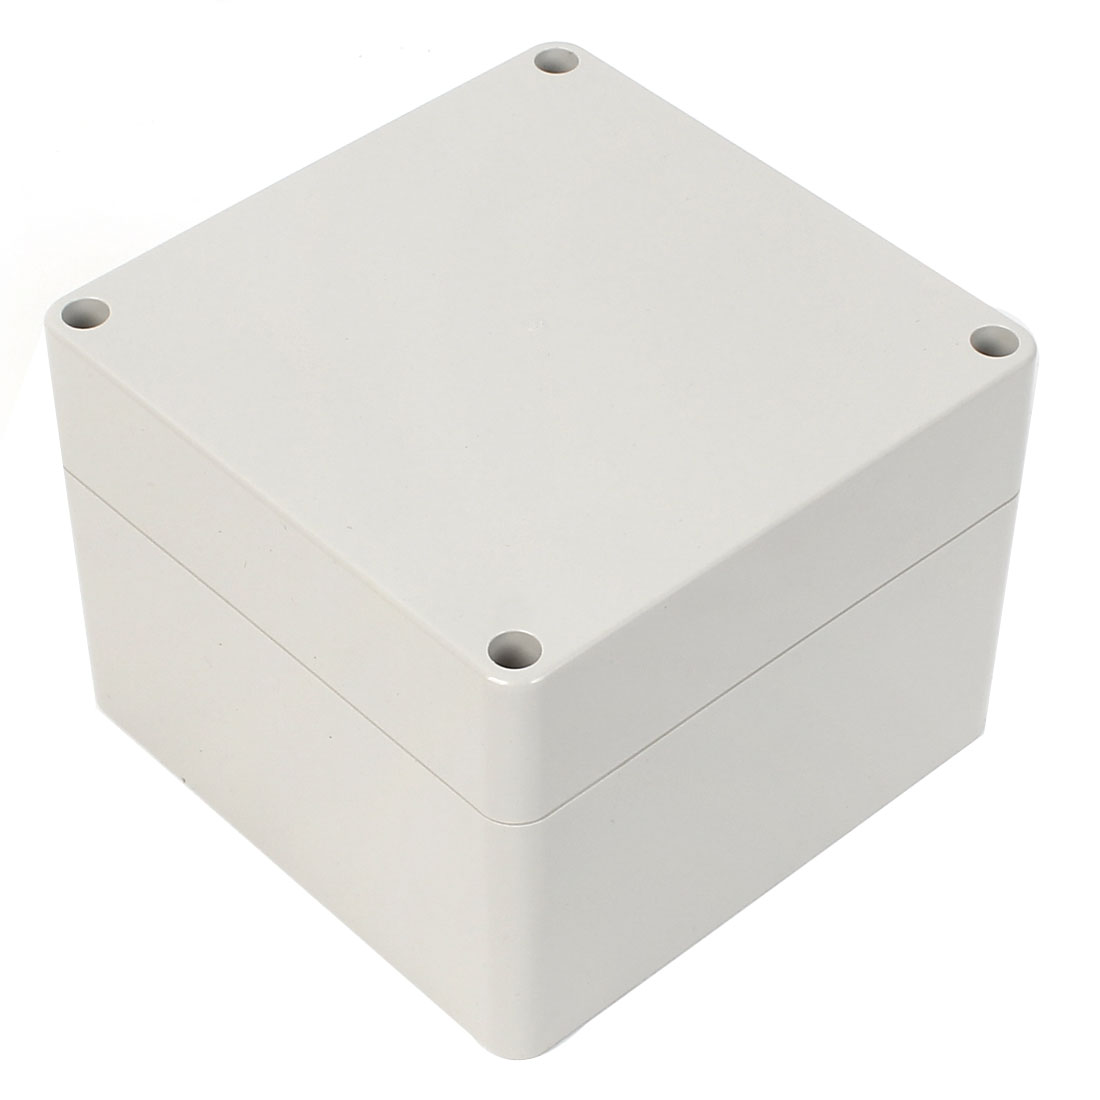 120mm x 120mm x 90mm Waterproof ABS Enclosure Case Junction Box Holder